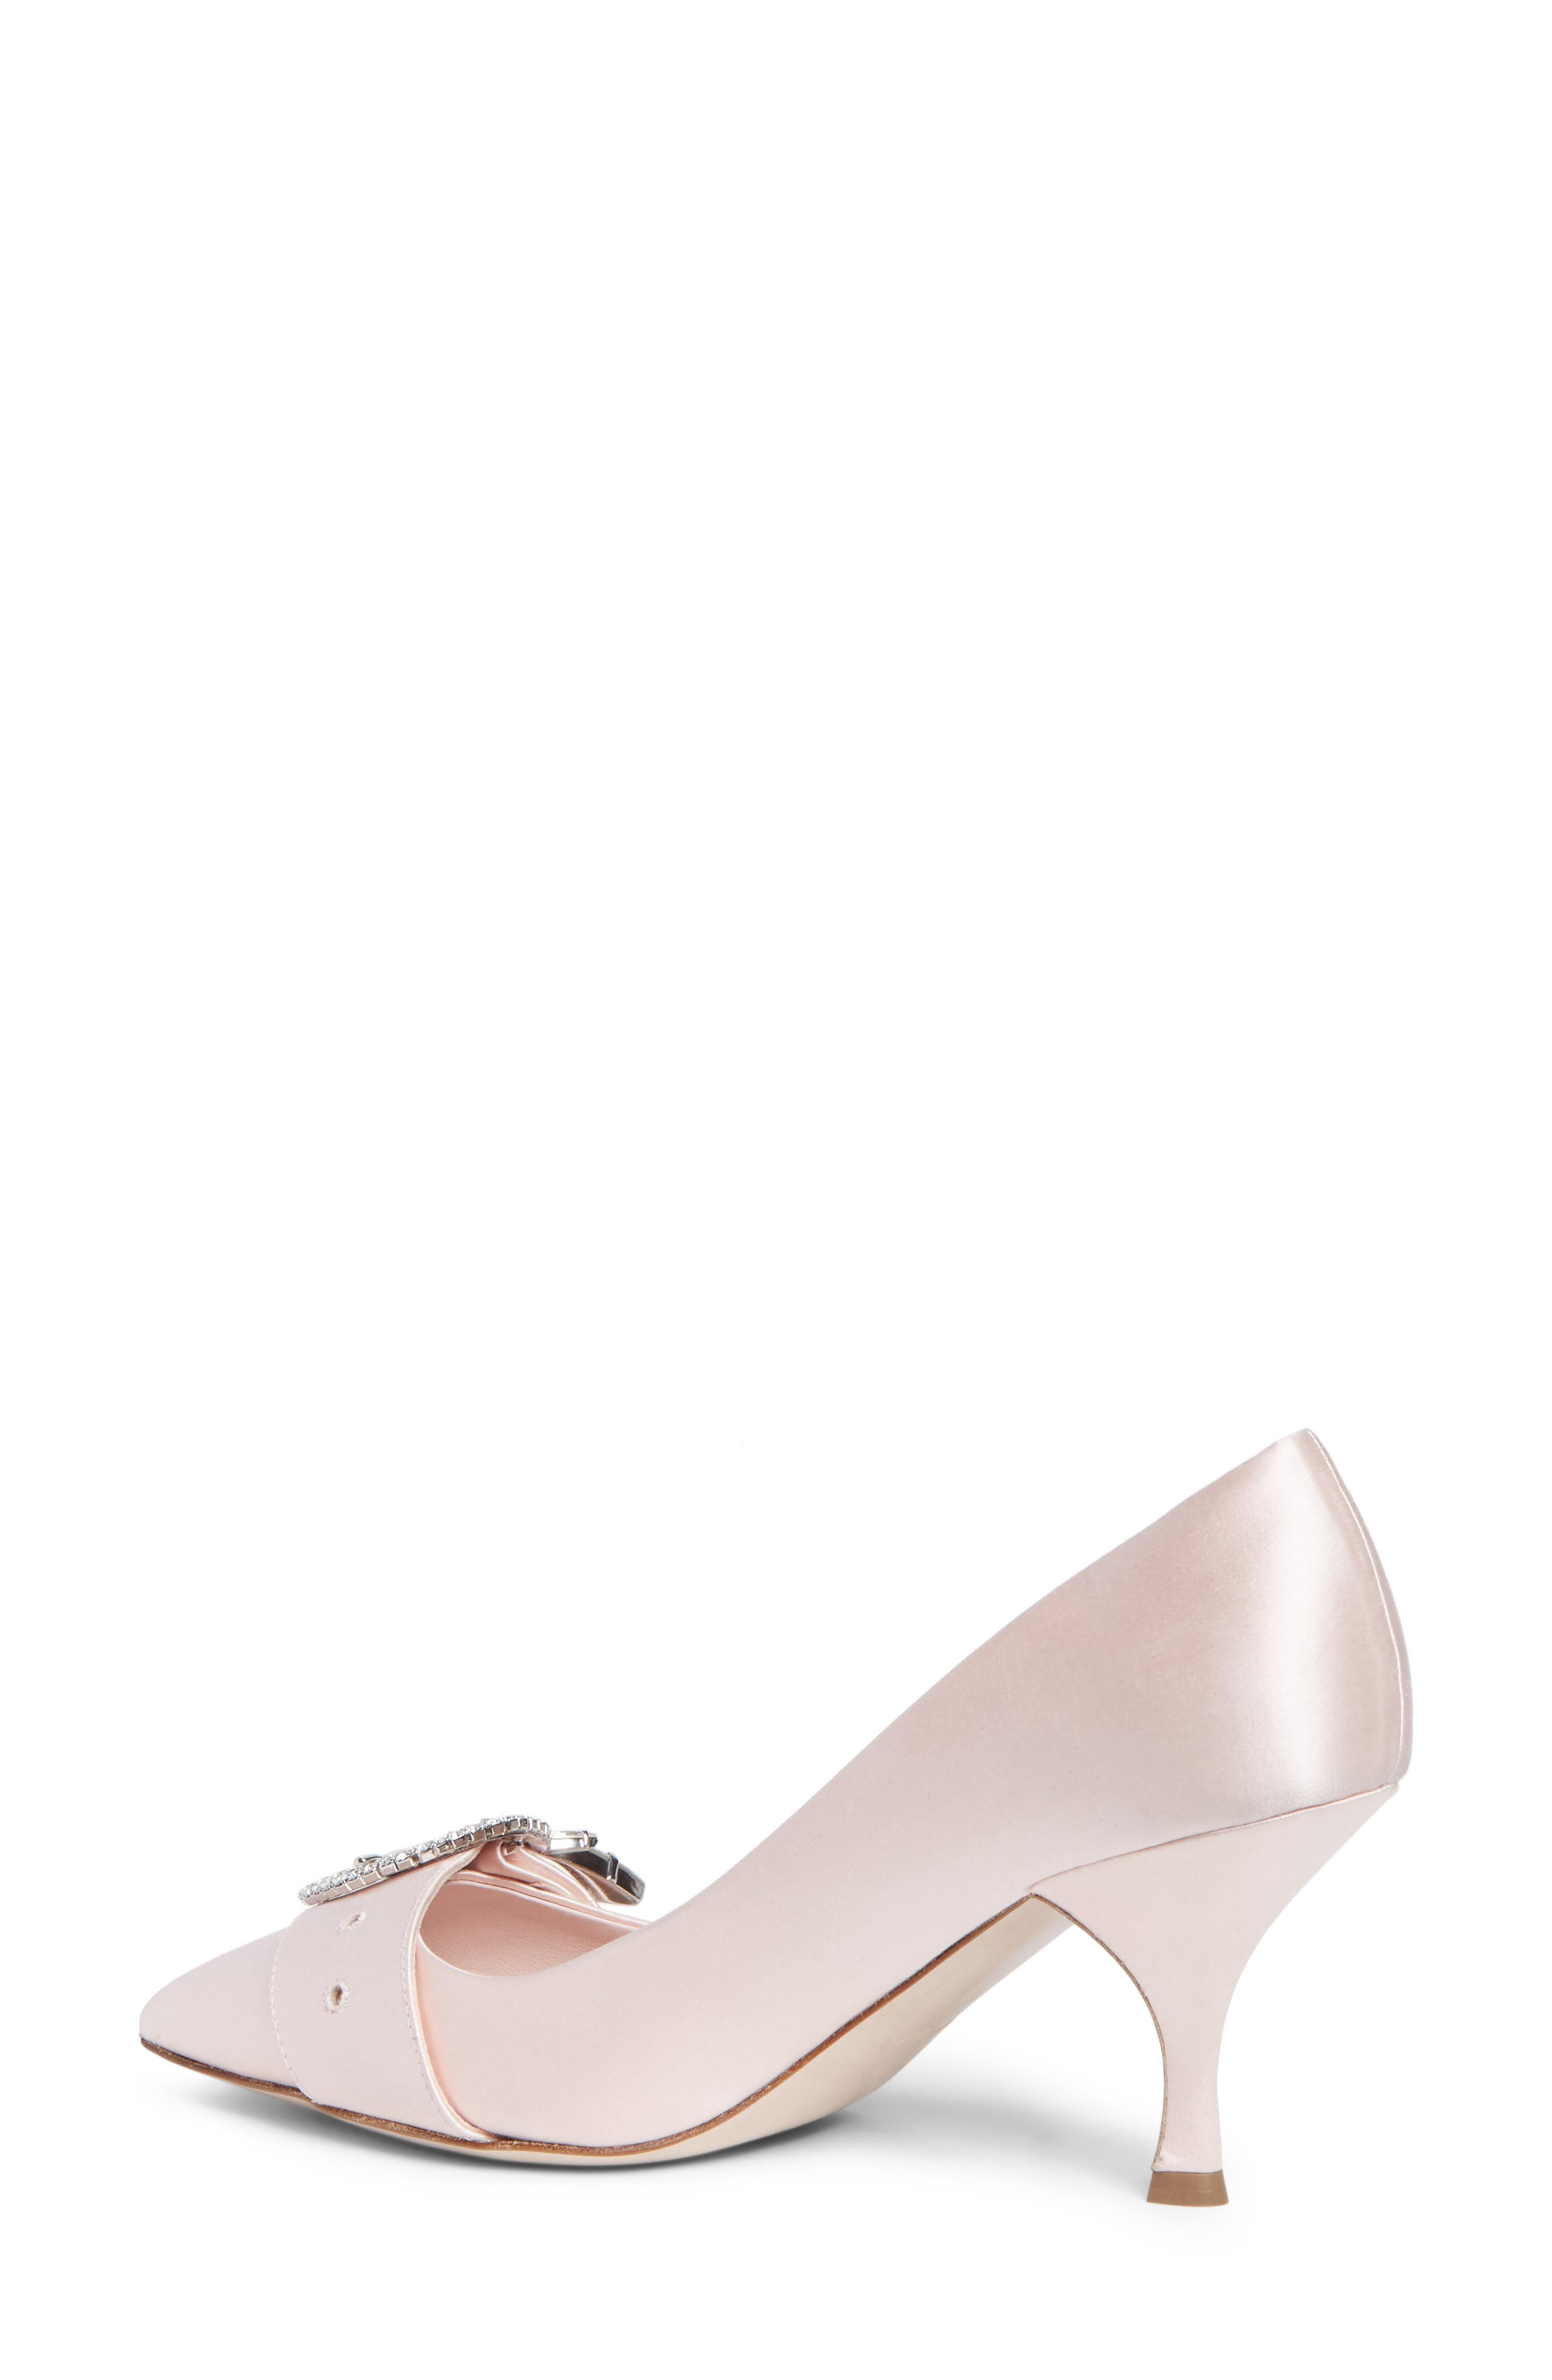 Crystal Buckle Pump,                             Alternate thumbnail 2, color,                             Pink Satin